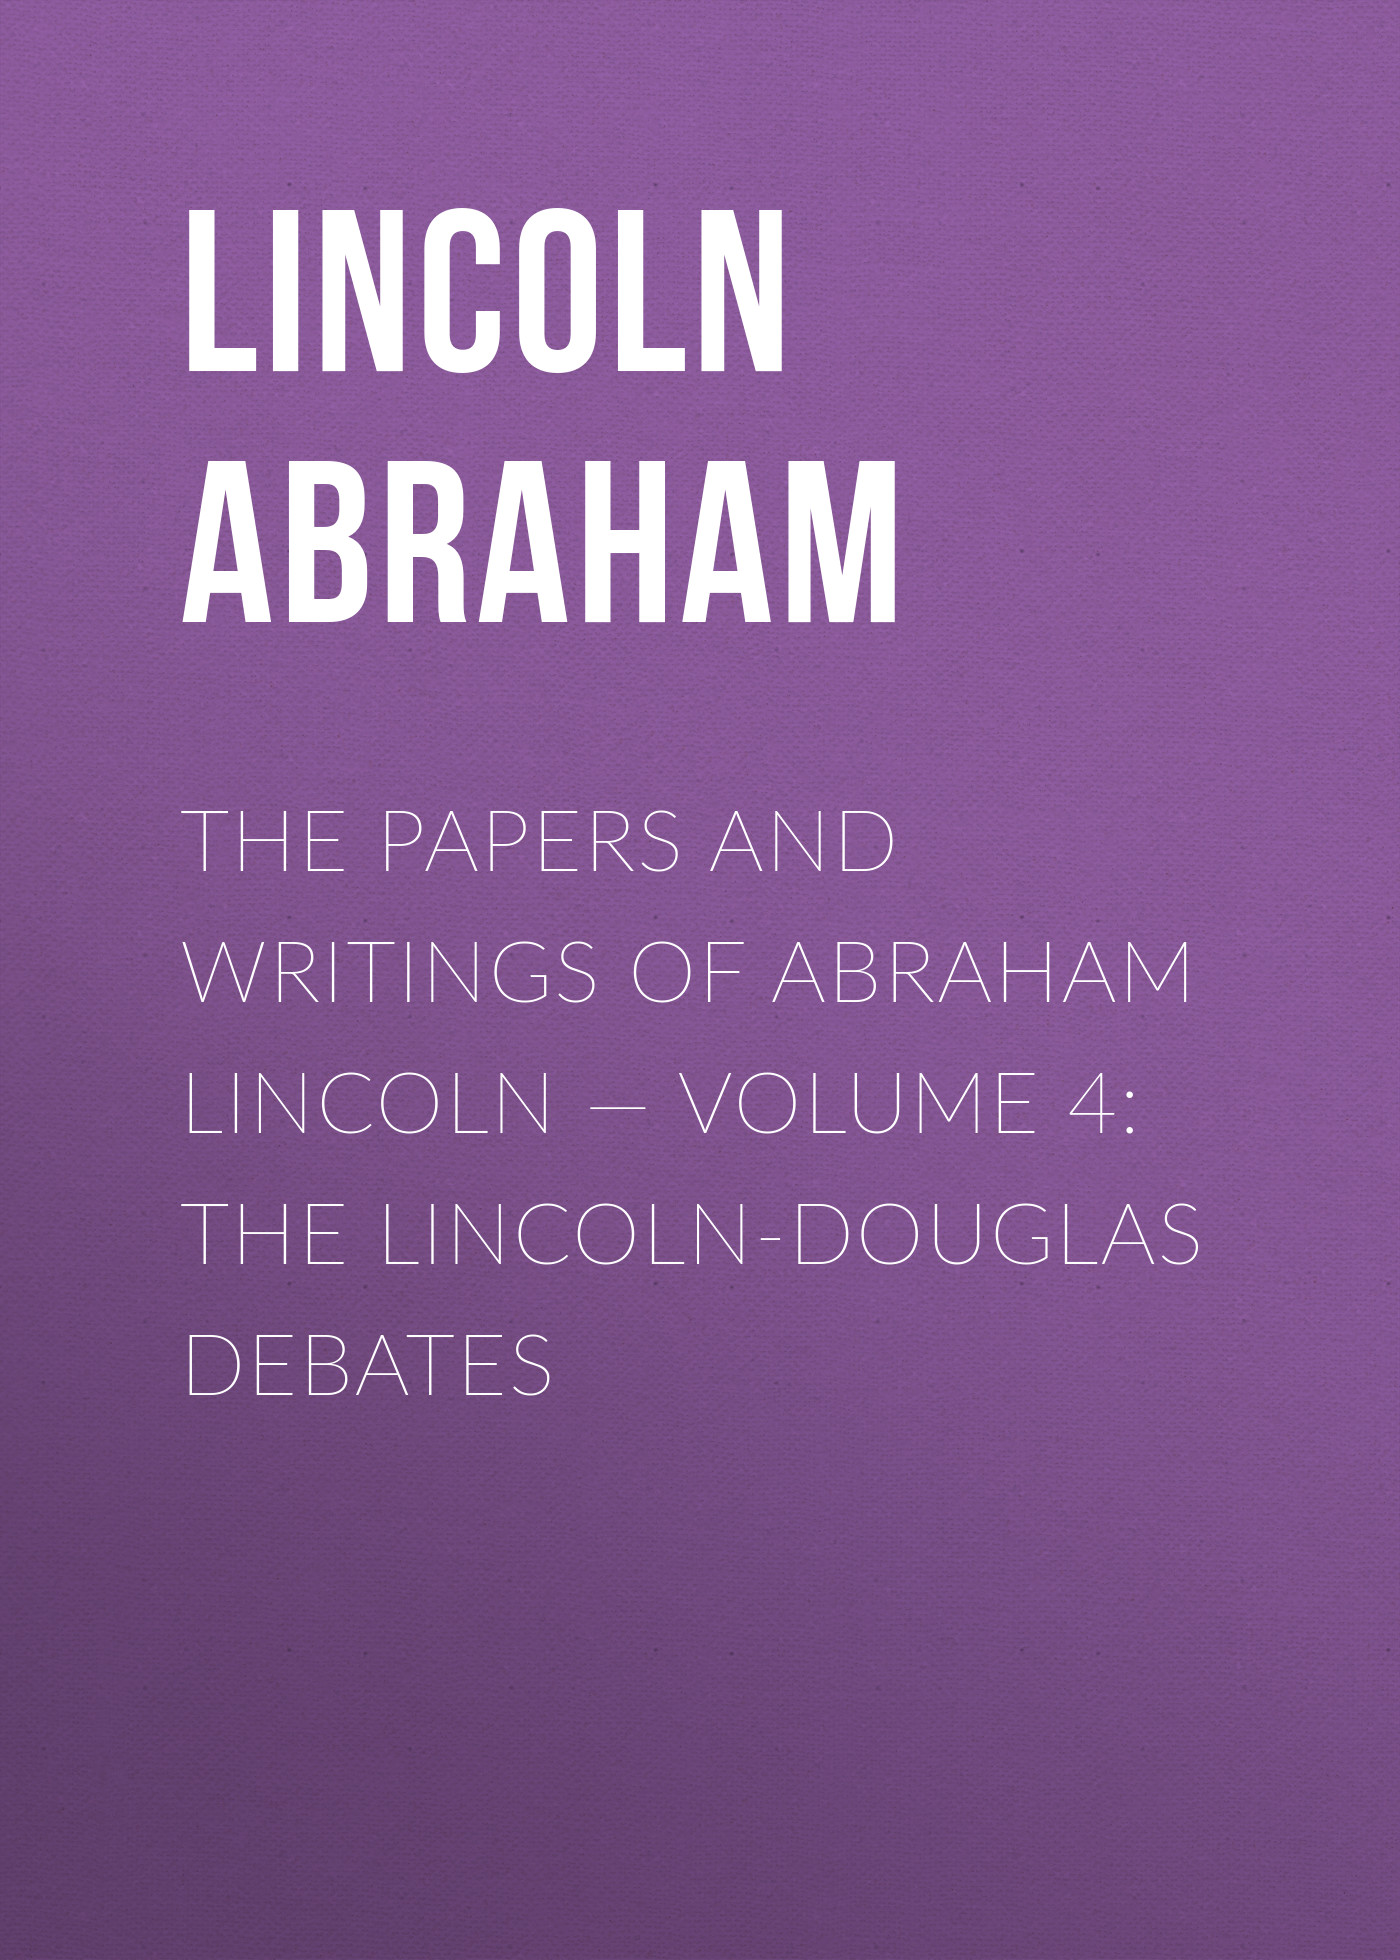 Фото - Lincoln Abraham The Papers And Writings Of Abraham Lincoln — Volume 4: The Lincoln-Douglas Debates катушка зажигания для исследовательской экспедиции ford lincoln mercury 3l3e12a366ca uf 537